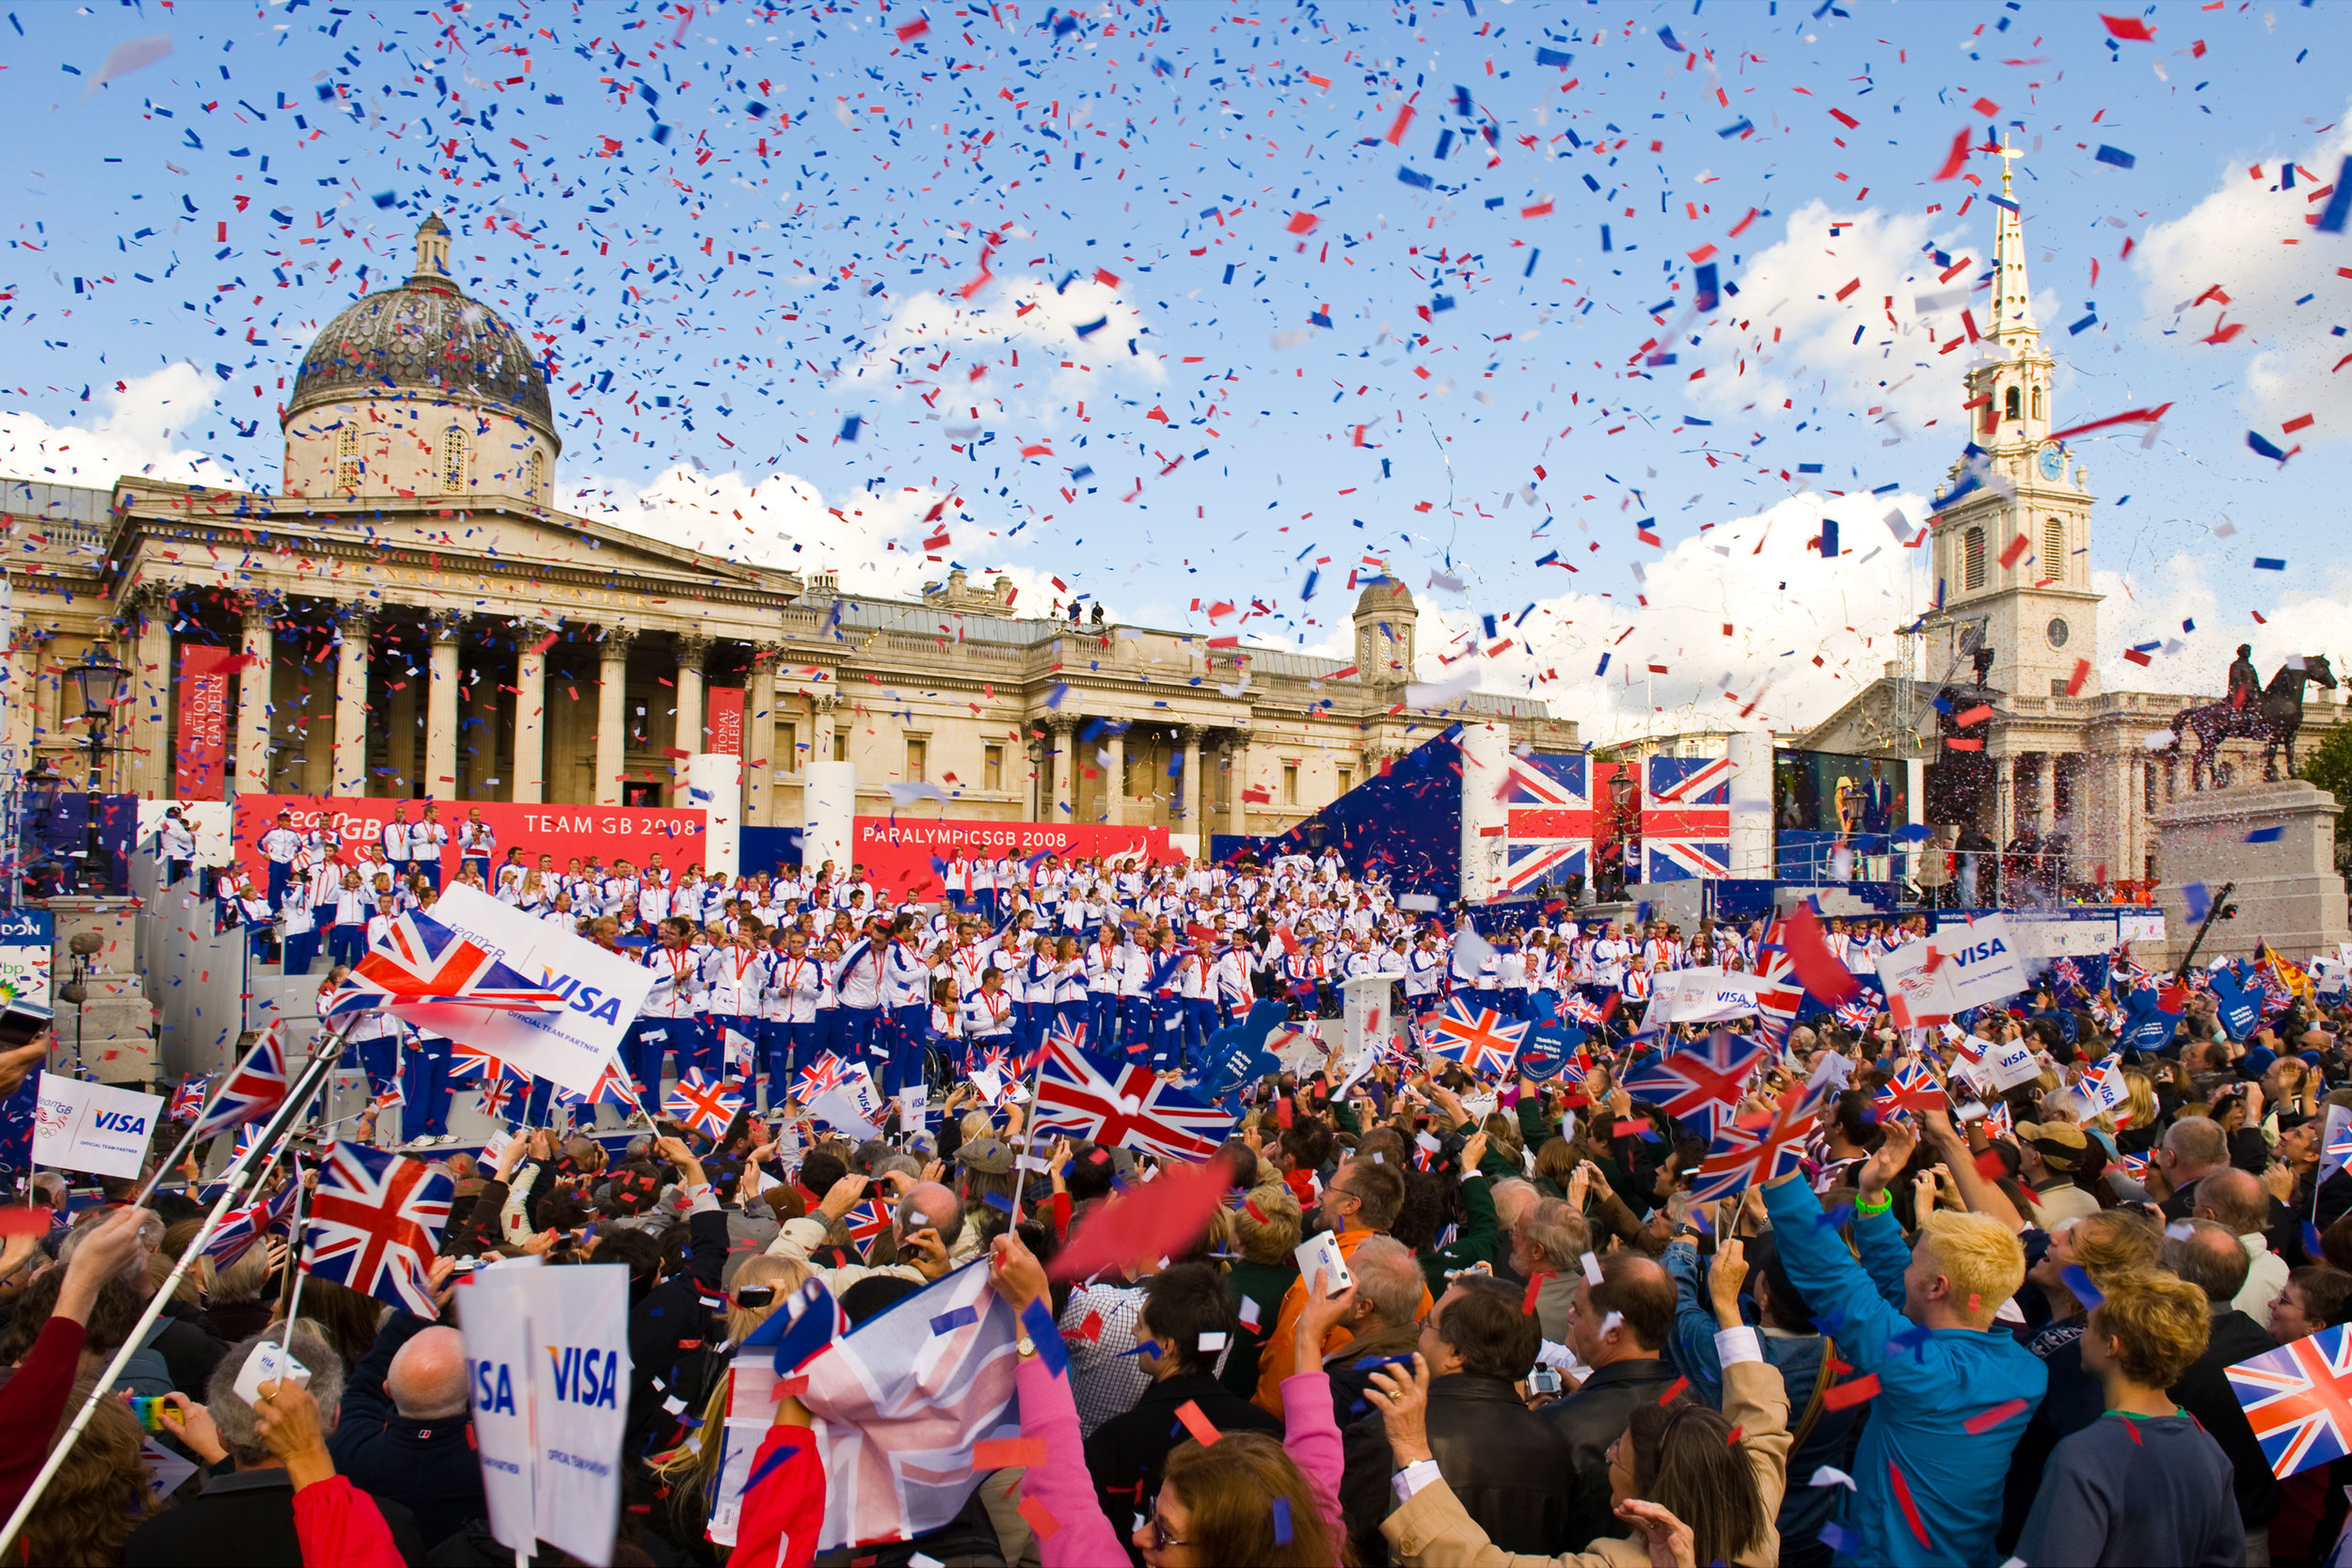 The British Athletes return from Rio - We were asked to cover an audience across with red, white and blue confetti.We launched 24 kilos of coloured paper confetti with compressed air cannons.